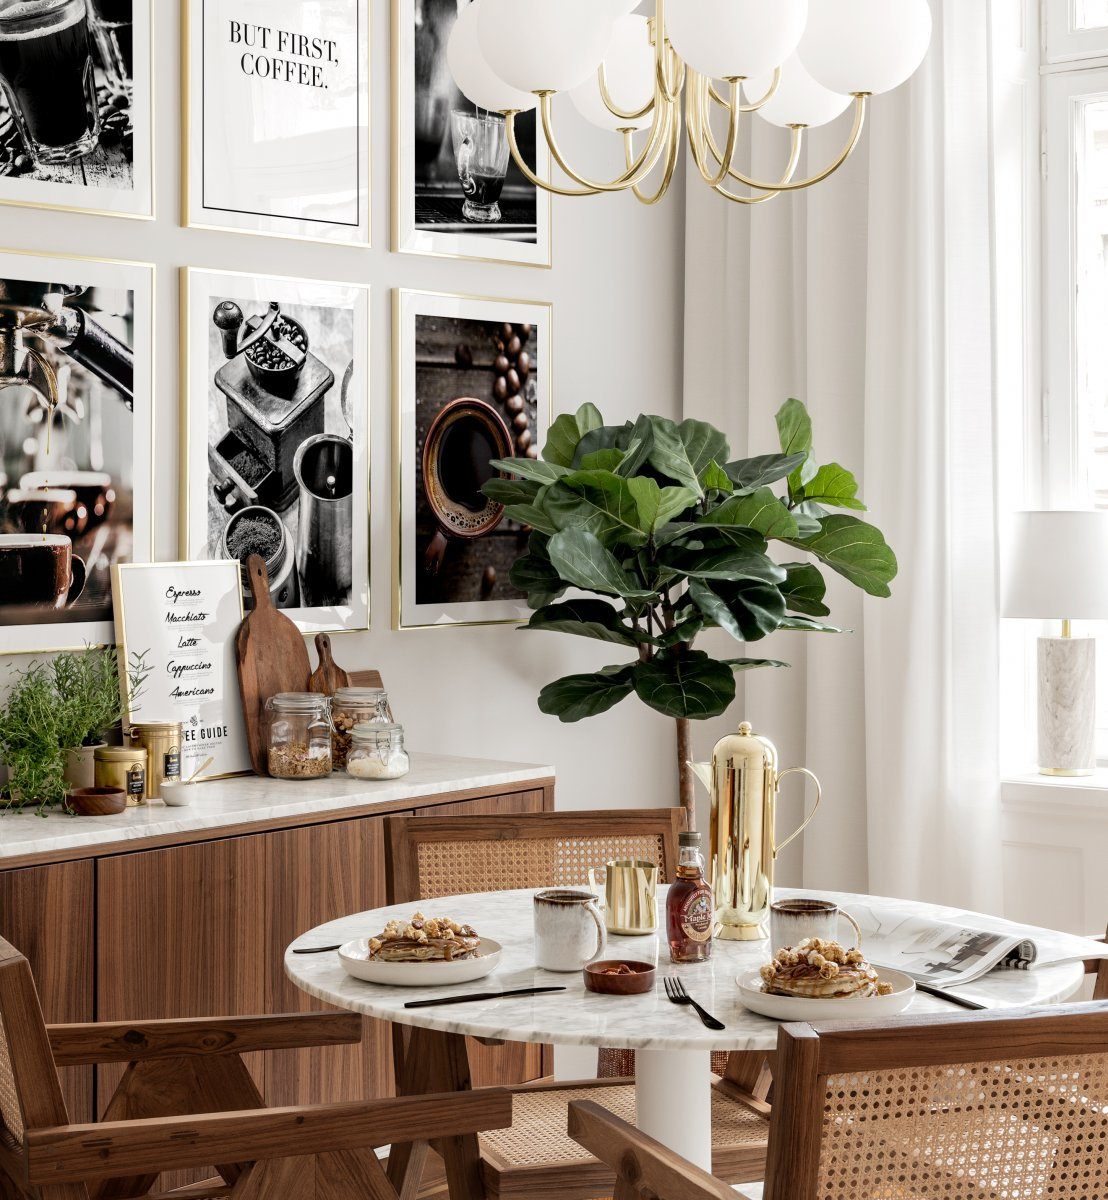 Dining Room Wall Art Coffee Posters Golden Frames Gallery Wall Inspiration Posterstore Co Uk